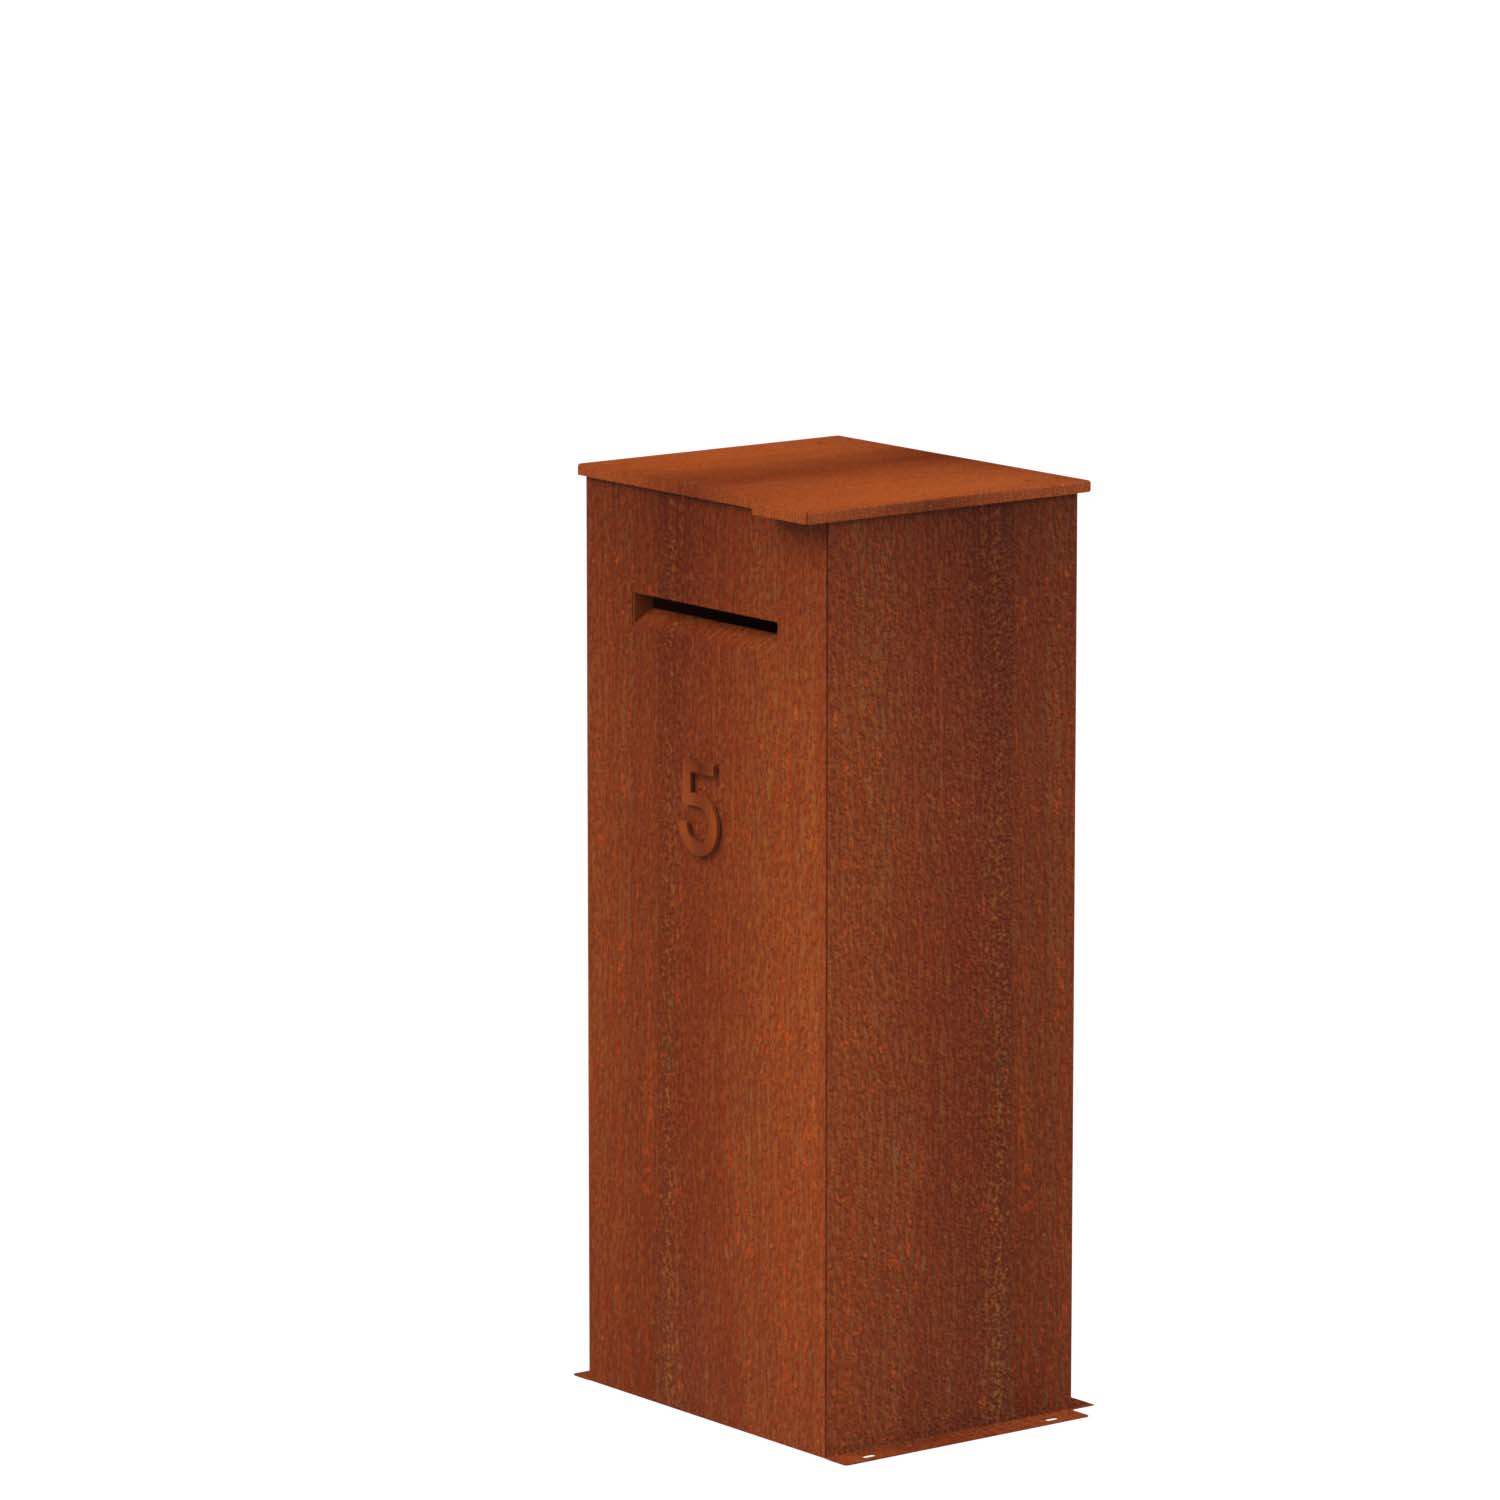 Case corten brievenbus